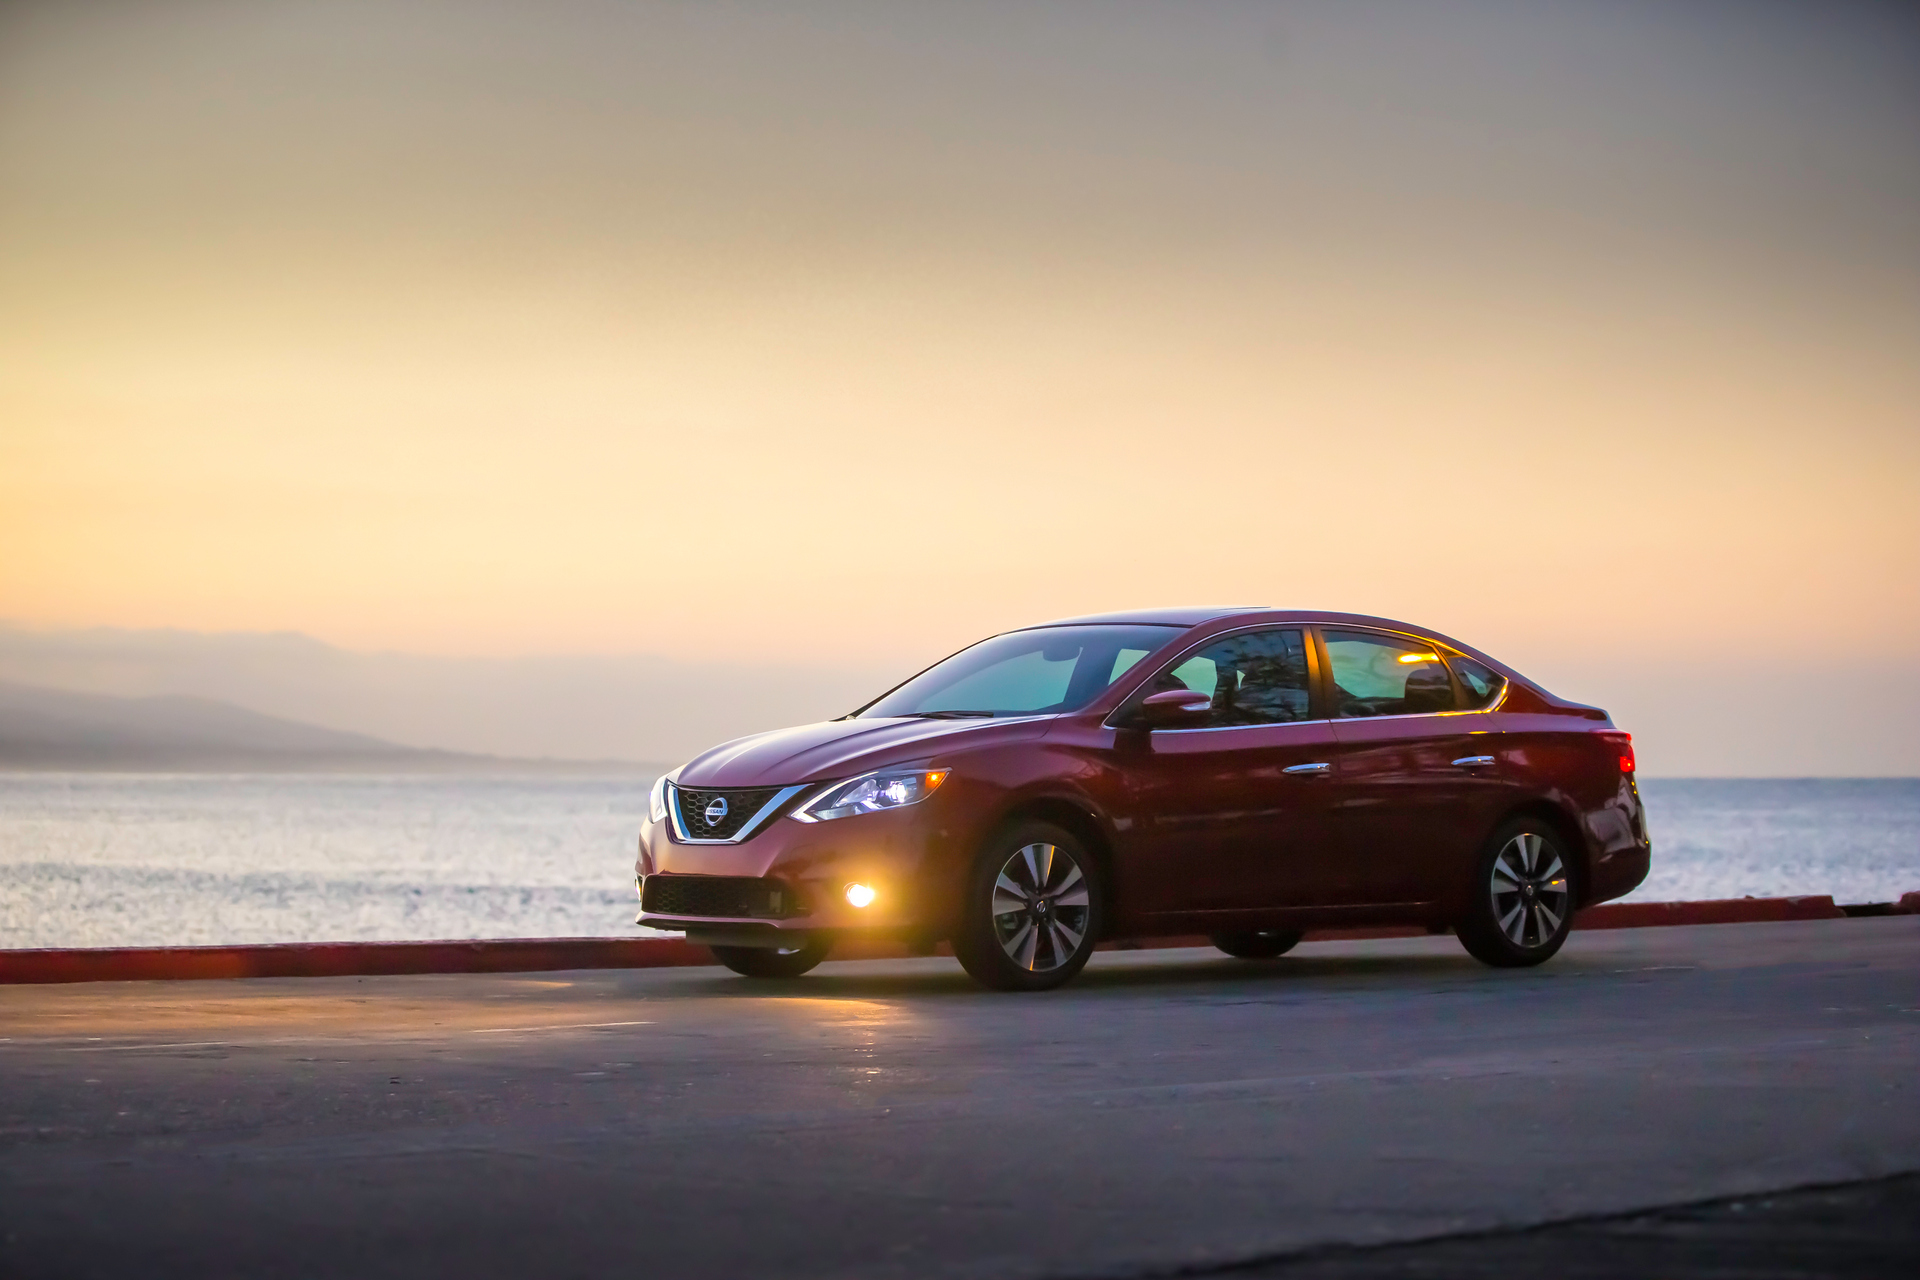 2016 Nissan Sentra © Nissan Motor Co., Ltd.